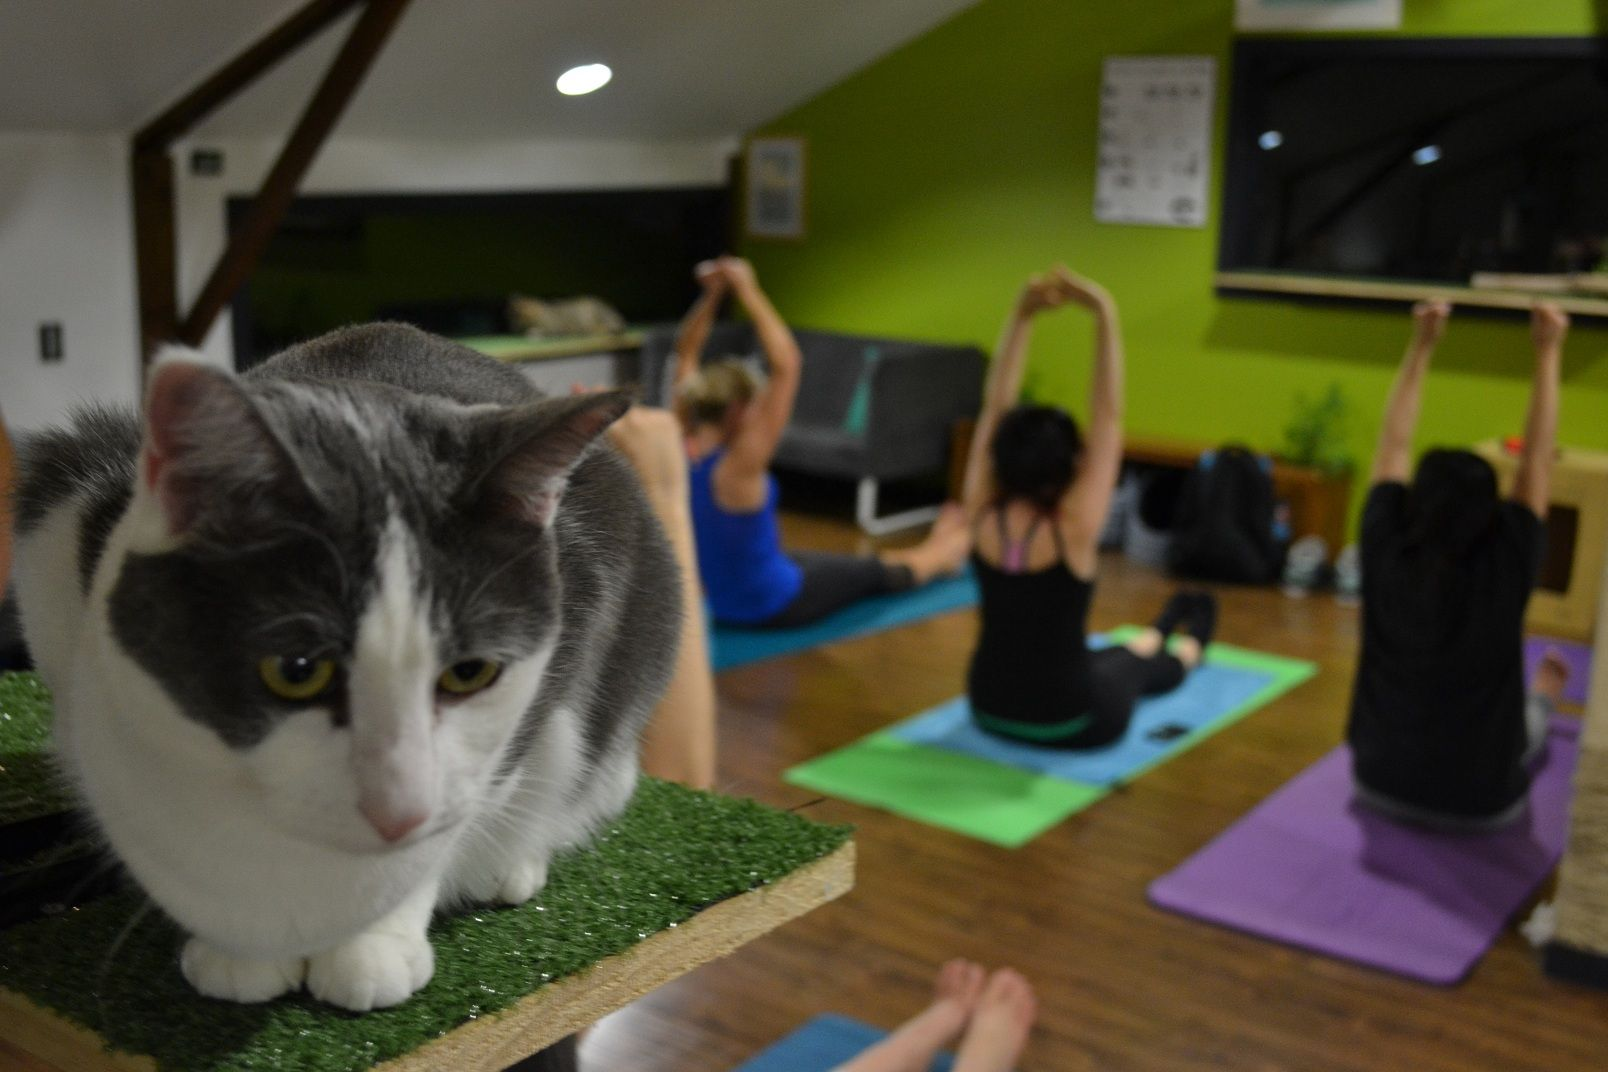 Yoga = best enjoyed with cats @kimdelahaye & @dralexhynes were lucky enough to partake in this spectacle at Lucky Cat Cafe's cat yoga session.